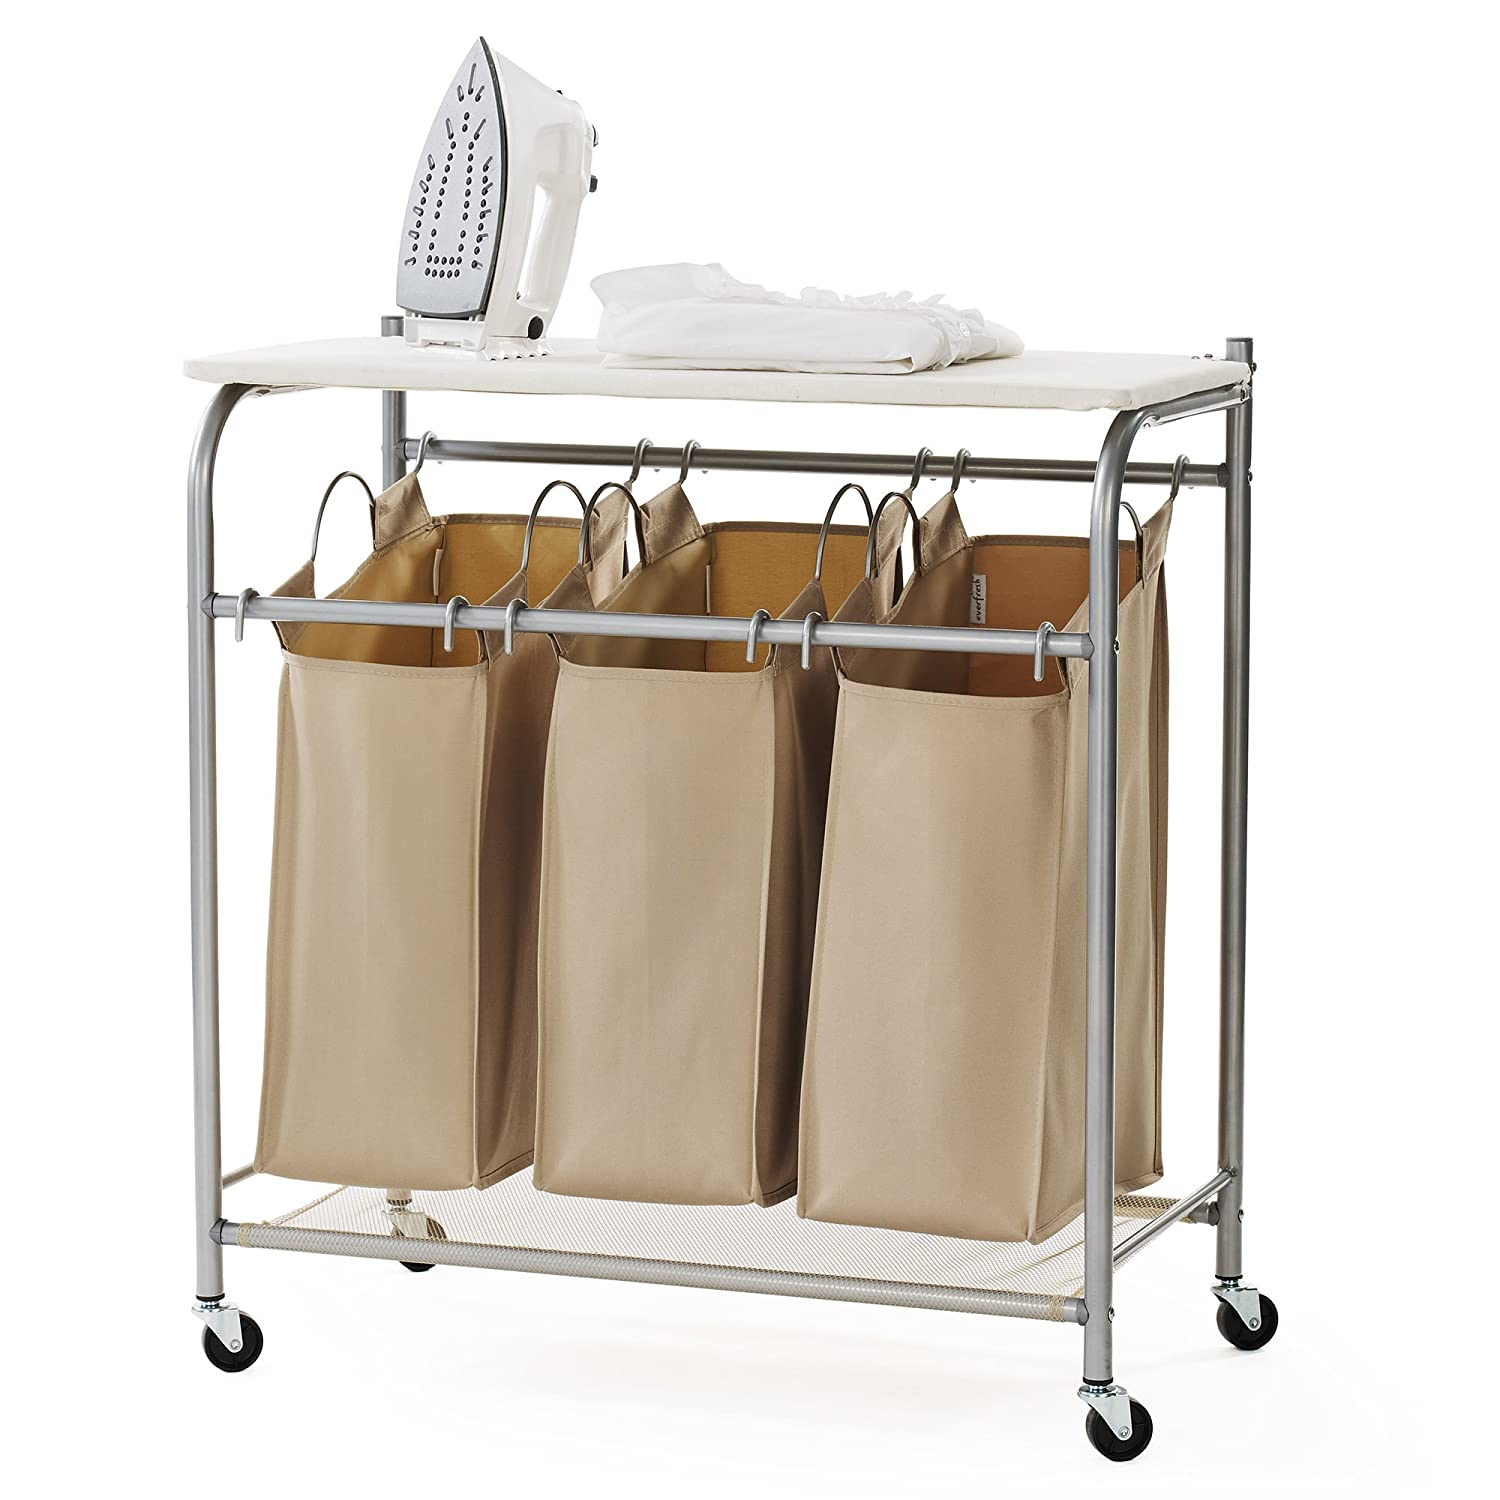 neatfreak U5479-EFST Triple Sorter with Ironing Board and Everfresh A-U5479-002X1-EFST